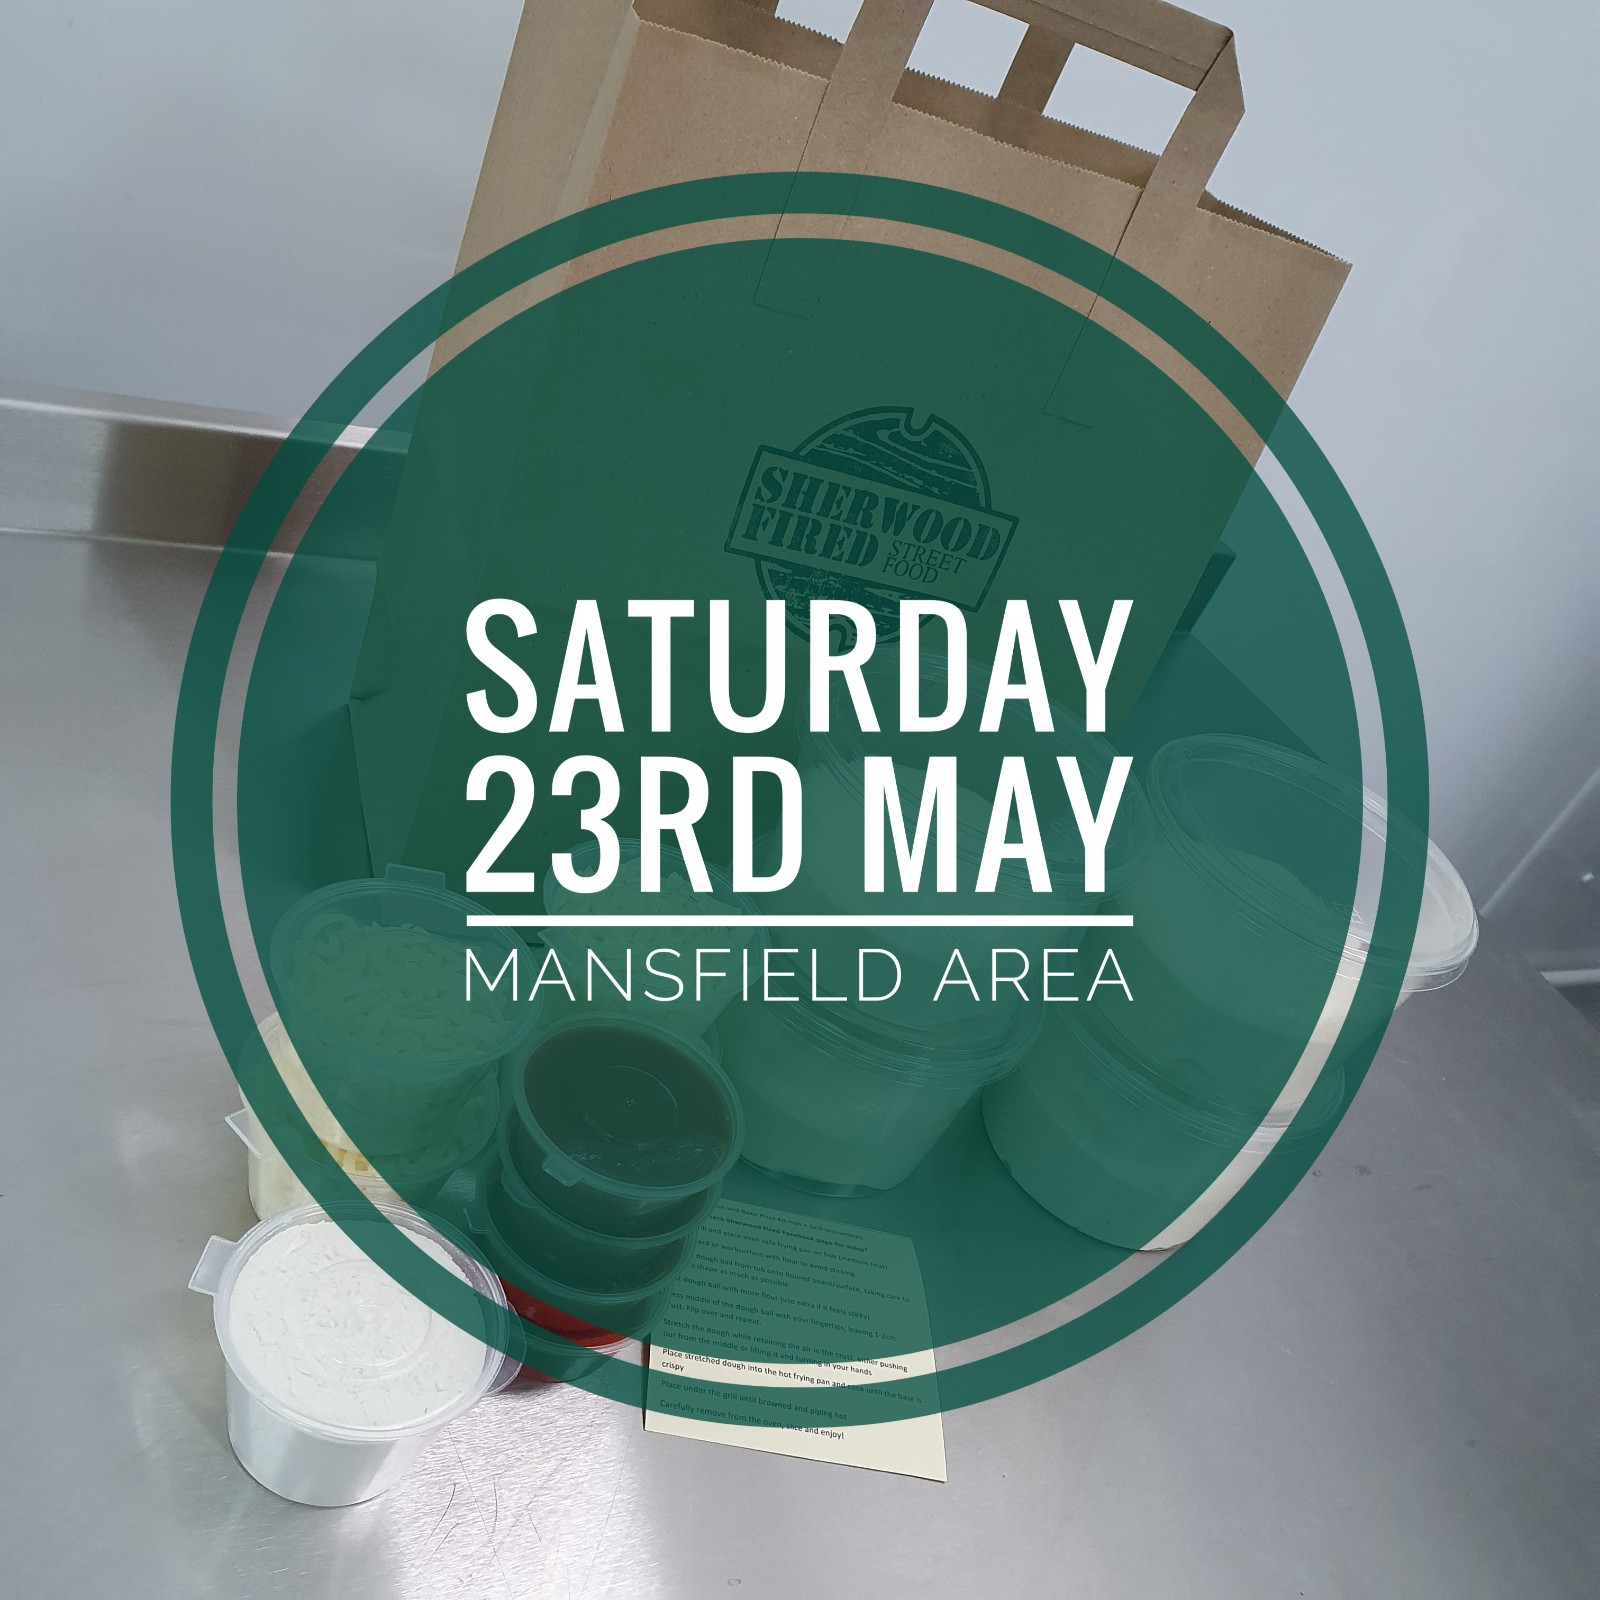 Sourdough Stretch and Bake Pizza Kit (SATURDAY 23rd MAY - MANSFIELD AREA)